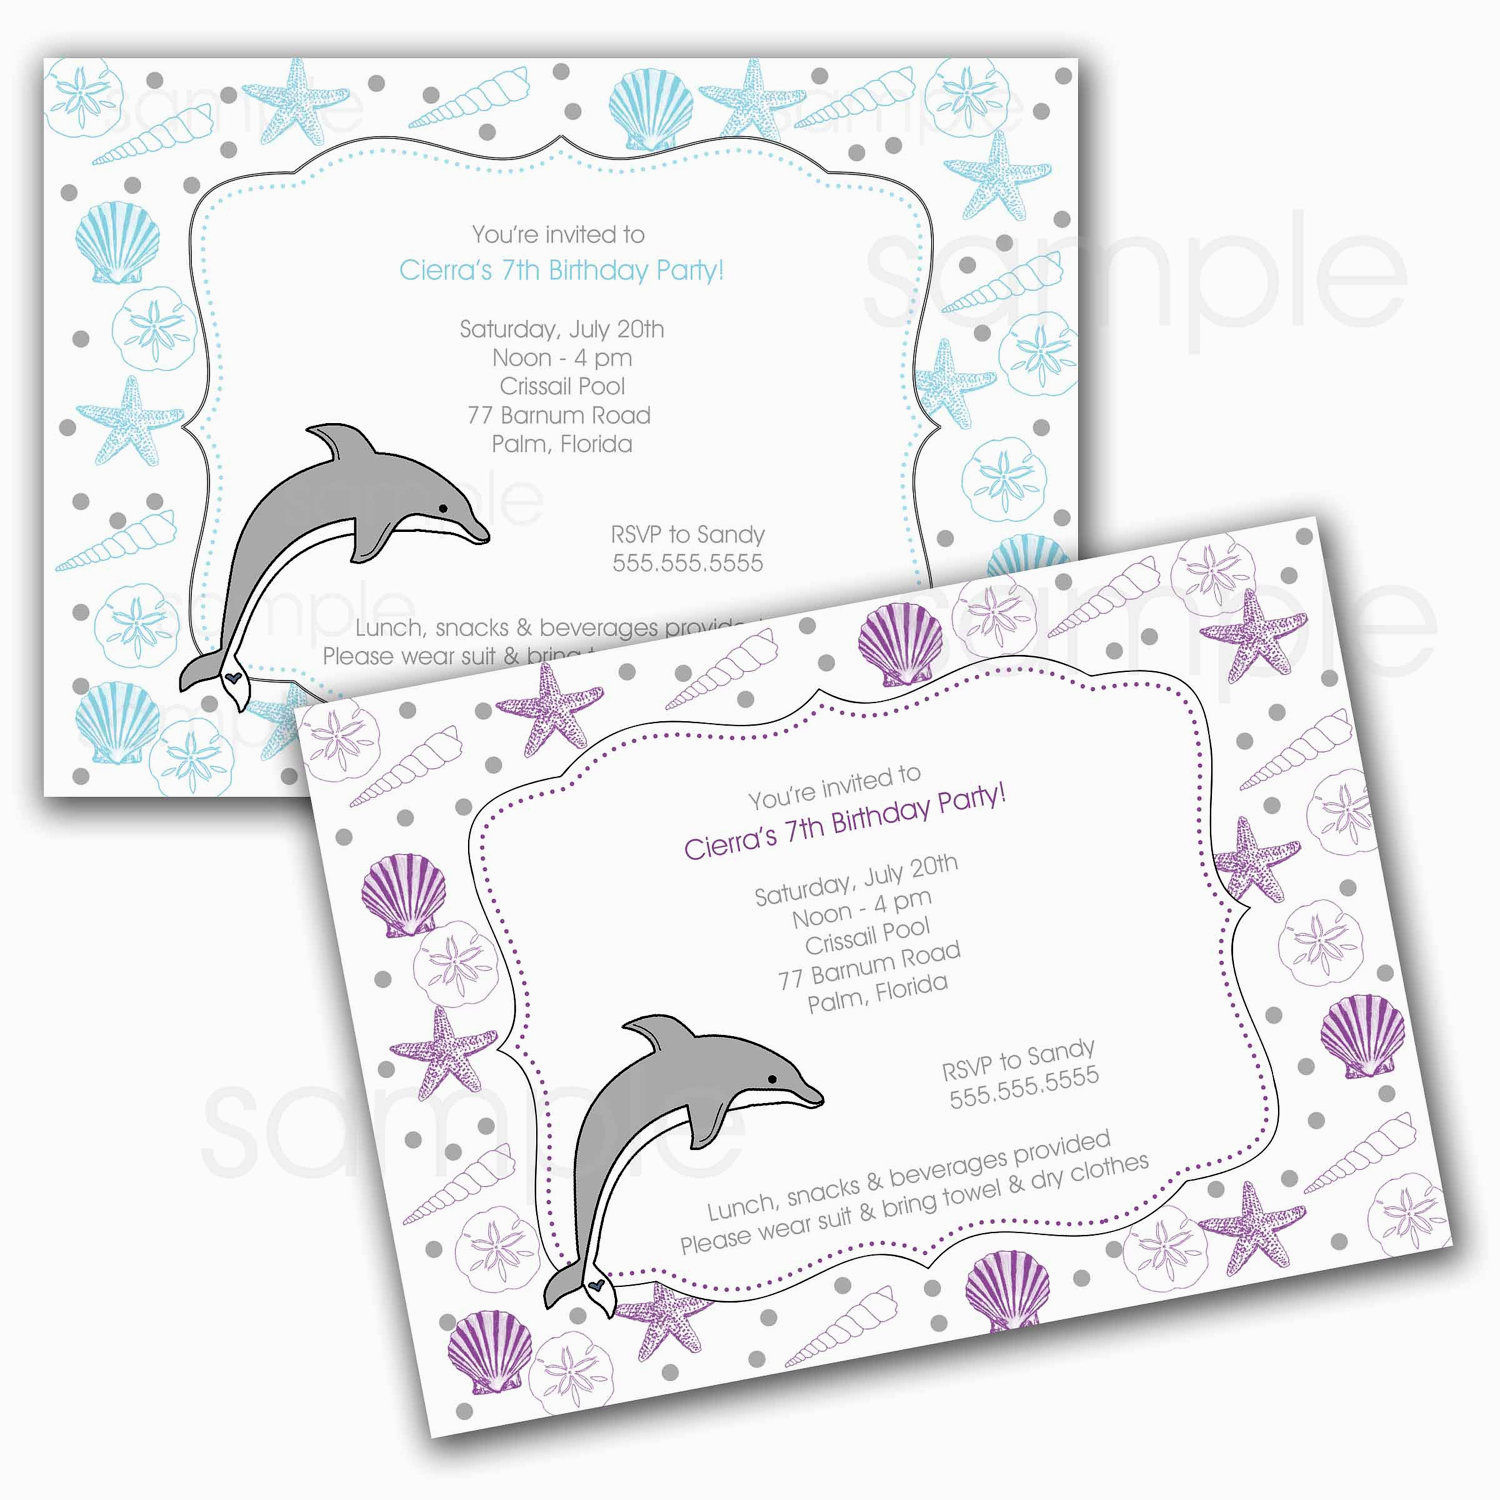 dolphin birthday invitations printable ; printable-dolphin-birthday-party-invitations-dolphin-birthday-party-invitations